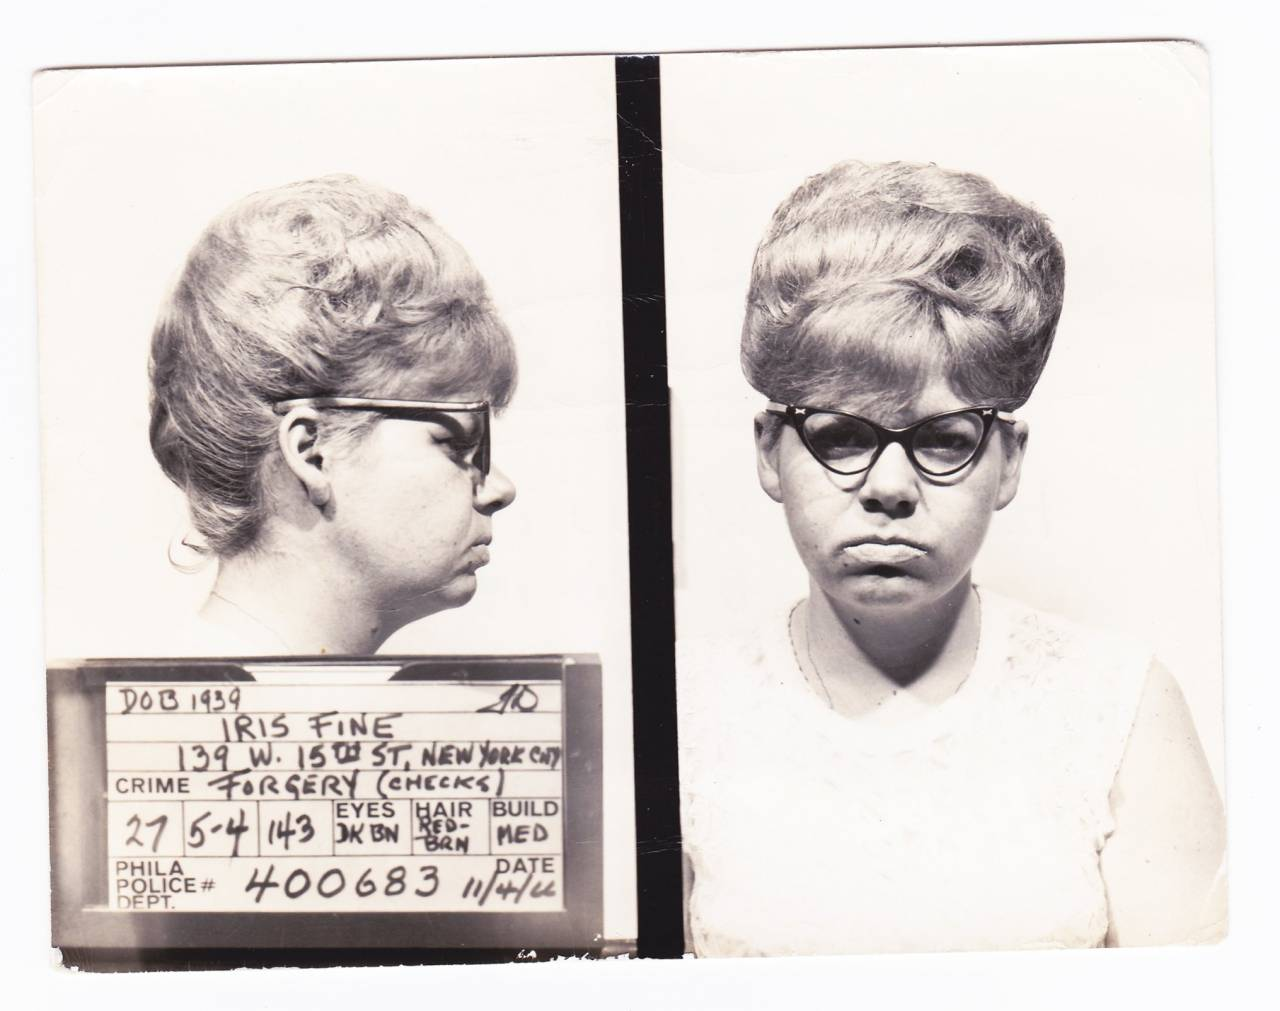 1960s mug shots New York